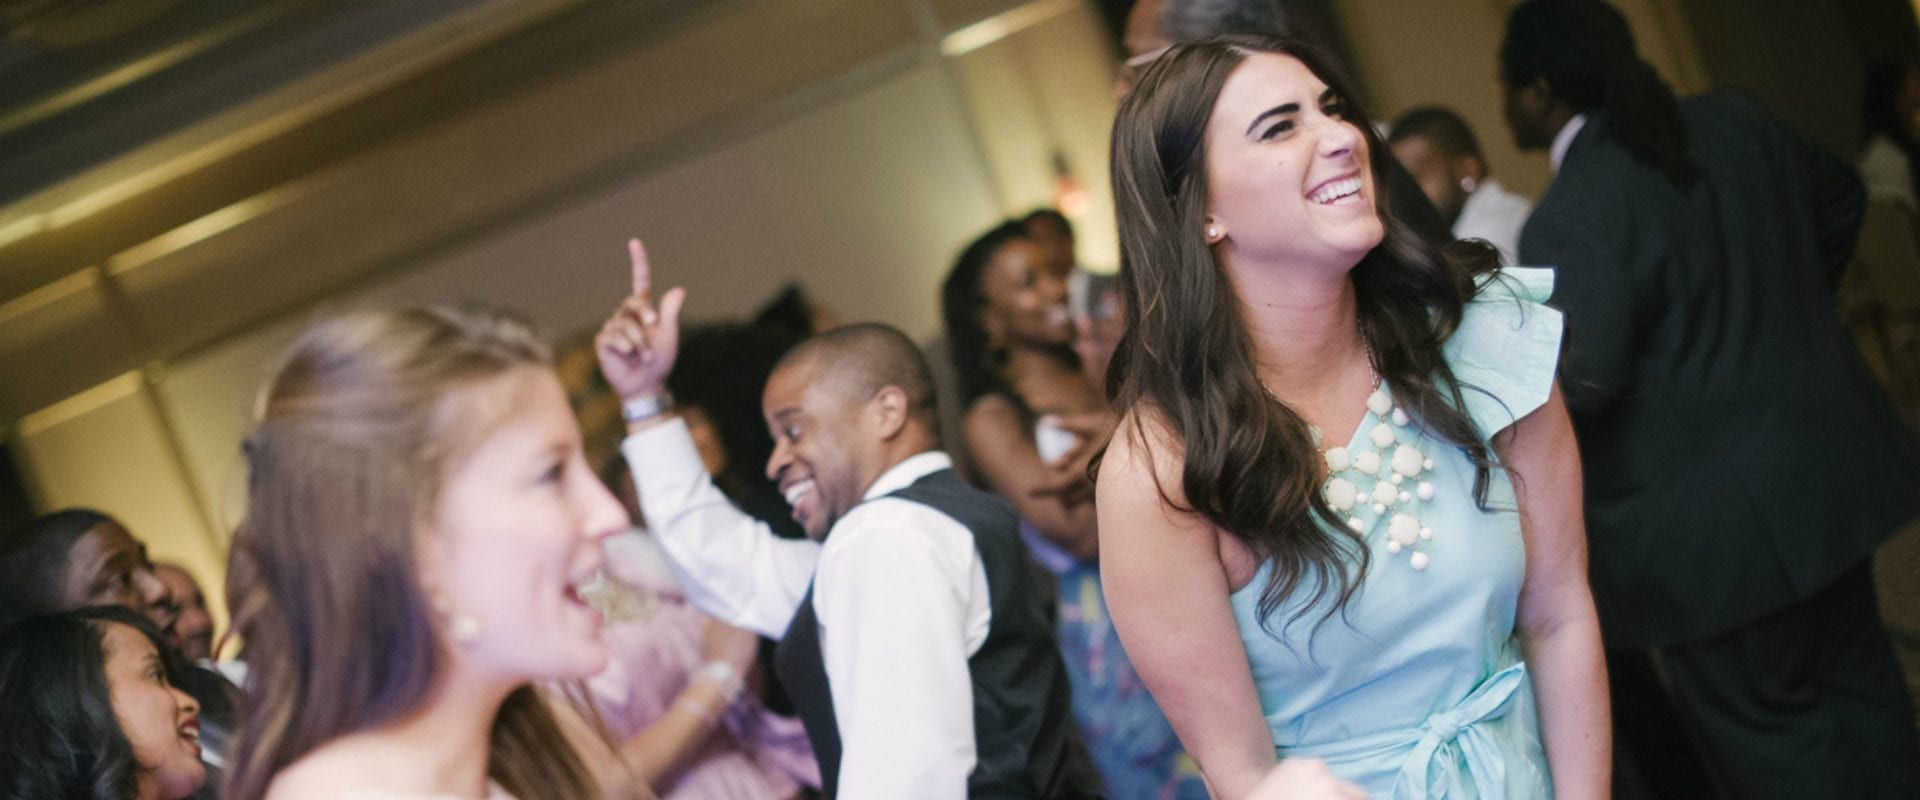 How to Guarantee a Fun Wedding - DJ TKO Entertainment - Wedding DJ